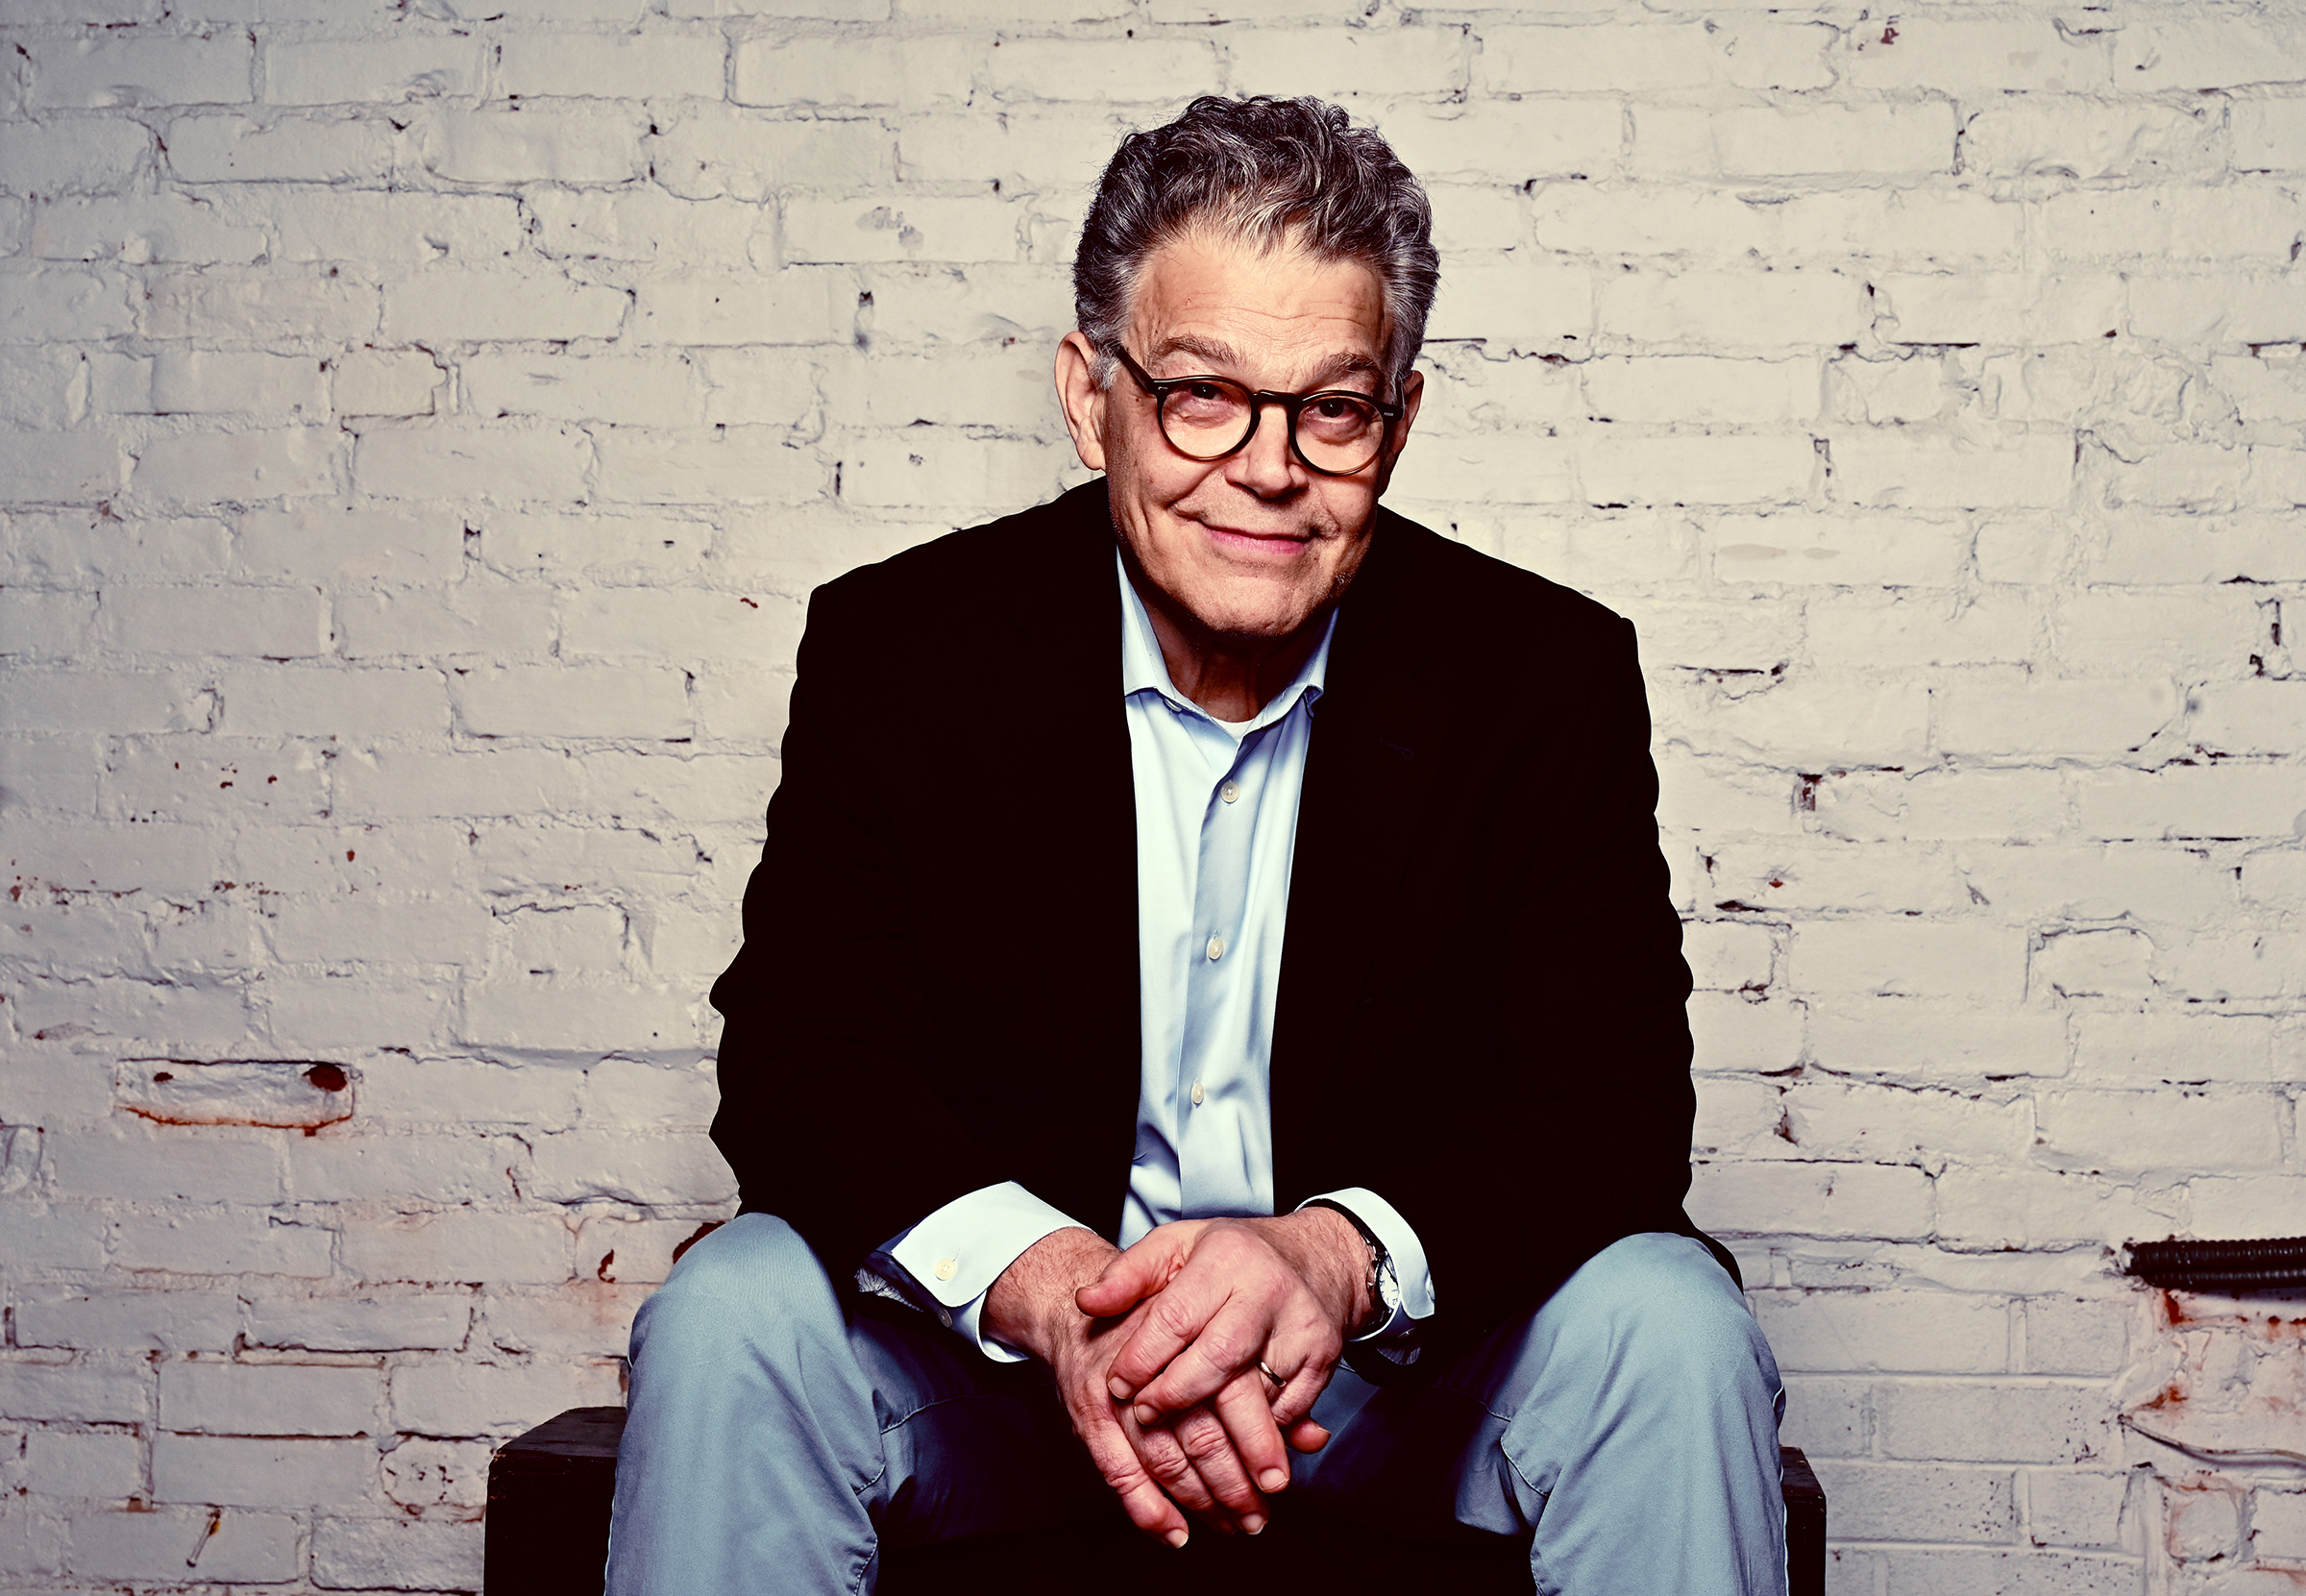 Former senator Al Franken kicked off his 15-city standup tour Saturday at the Academy of Music in Northampton, Mass. MUST CREDIT: Washington Post photo by Marvin Joseph